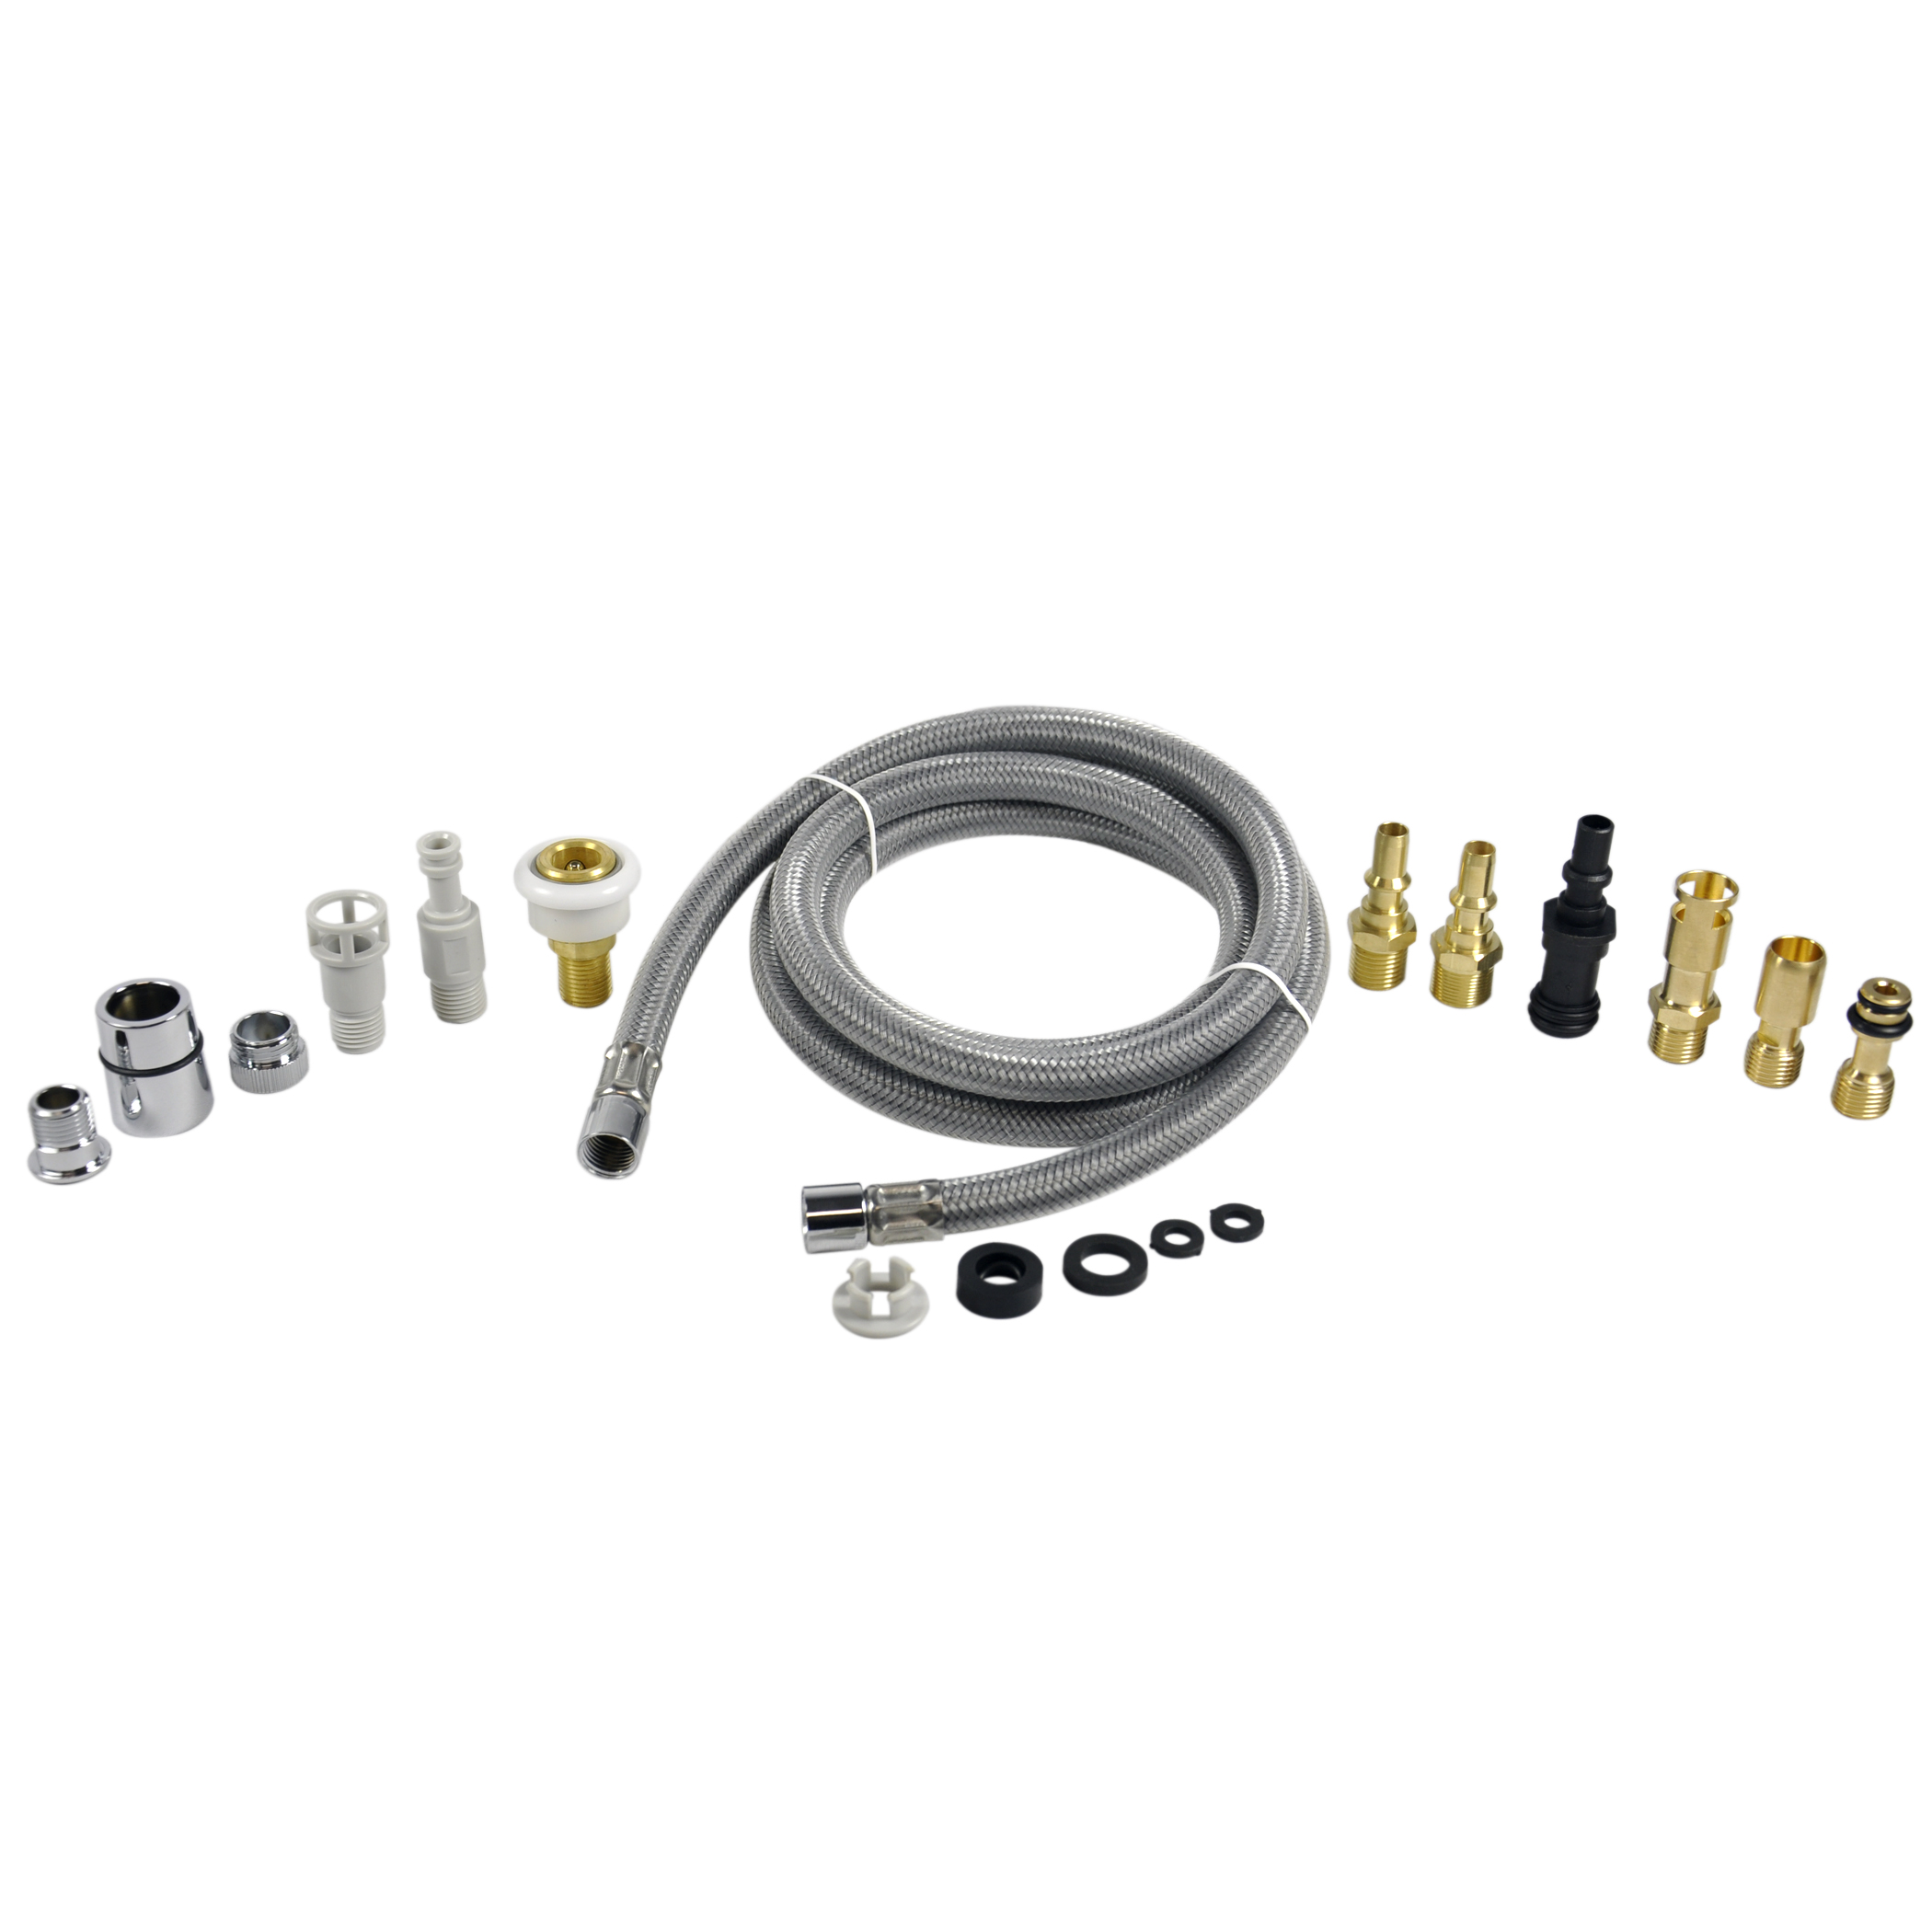 Kitchen Faucet Pull Out Spray Hose Replacement Kit For Pullout Sprayer Heads Plumbing Parts By Danco